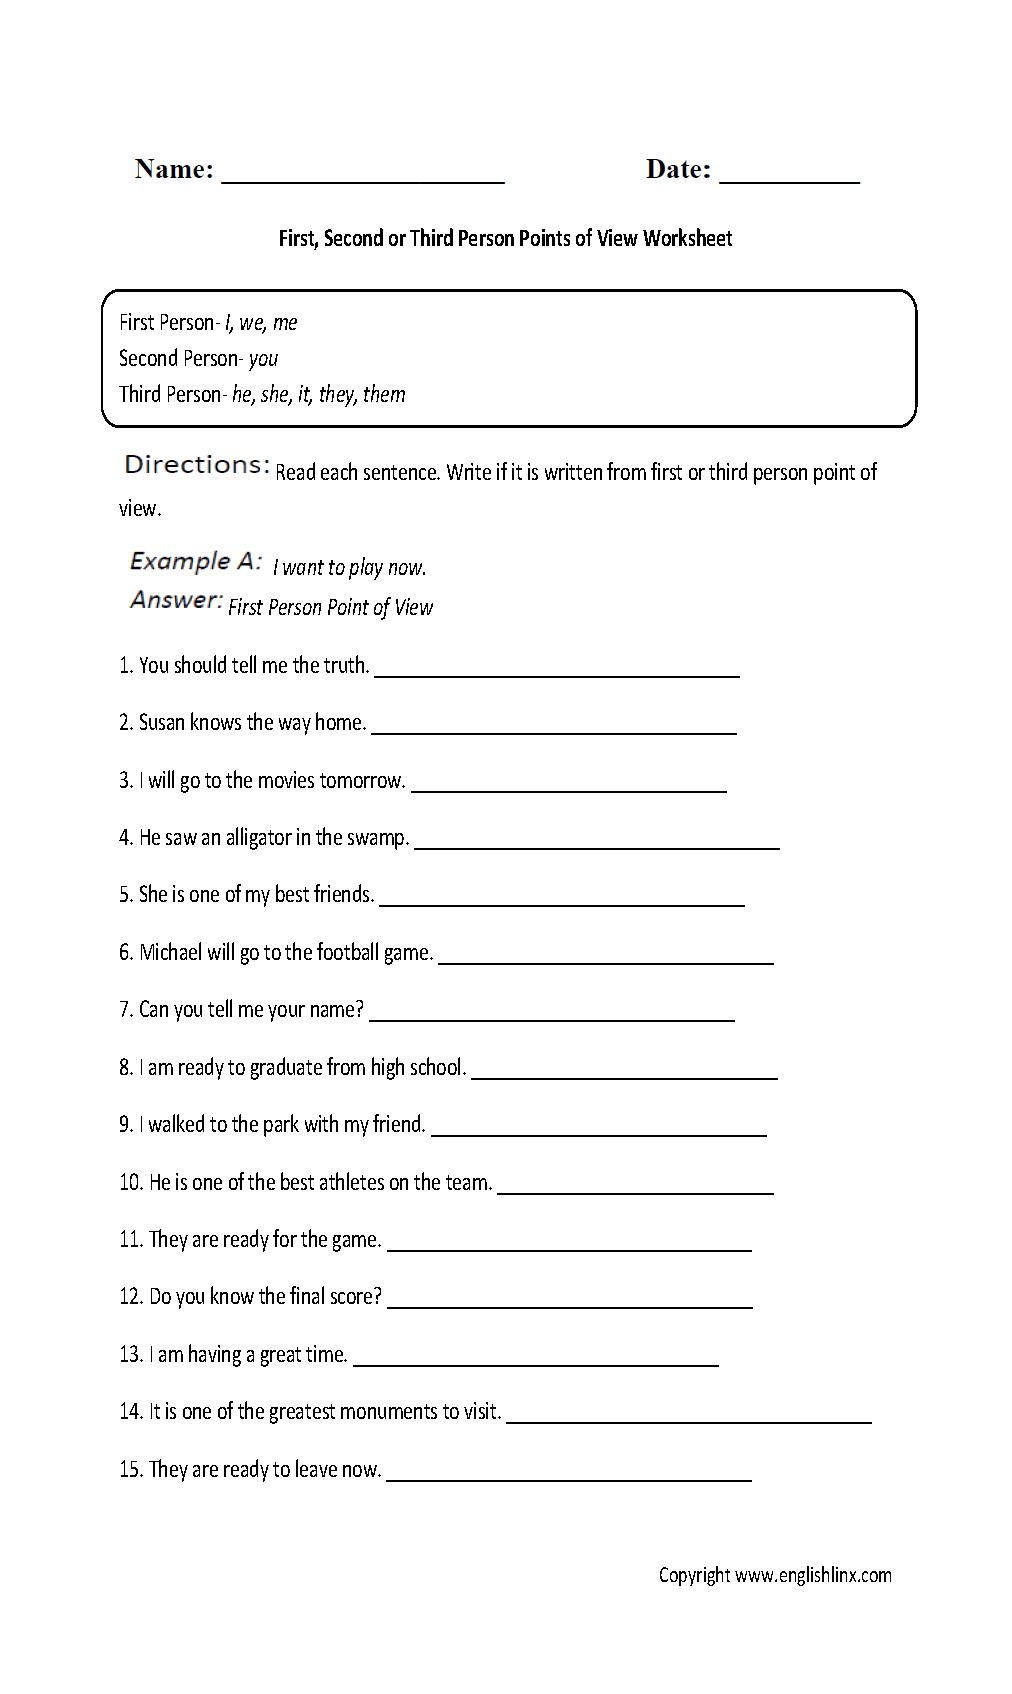 Weirdmailus  Nice Englishlinxcom  Point Of View Worksheets With Marvelous Point Of View Worksheet With Appealing The Quadratic Formula Worksheet Also Soil Worksheets In Addition First Grade Worksheet And Chapter  The Chemistry Of Life Worksheet Answers As Well As Fraction To Percent Worksheet Additionally Because Of Winn Dixie Worksheets From Englishlinxcom With Weirdmailus  Marvelous Englishlinxcom  Point Of View Worksheets With Appealing Point Of View Worksheet And Nice The Quadratic Formula Worksheet Also Soil Worksheets In Addition First Grade Worksheet From Englishlinxcom